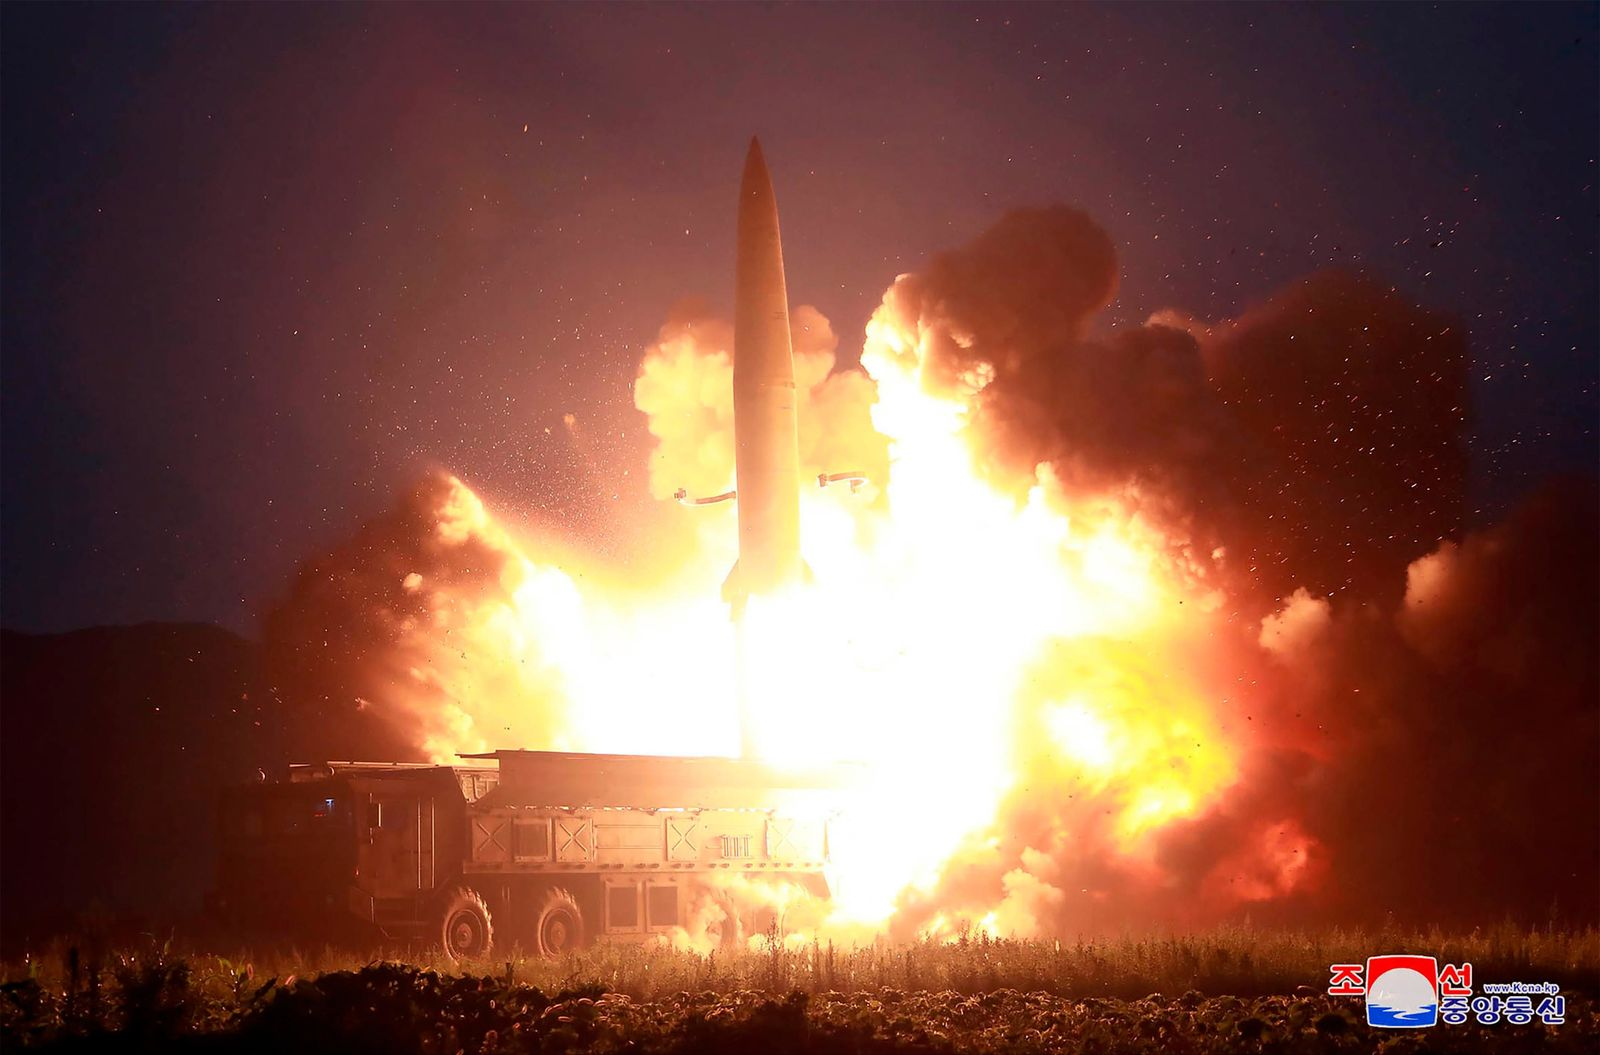 This Tuesday, Aug. 6, 2019, photo provided by the North Korean government shows what it says the launch of a new-type tactical guided missile at an airfield in the western area of North Korea. (Korean Central News Agency/Korea News Service via AP)